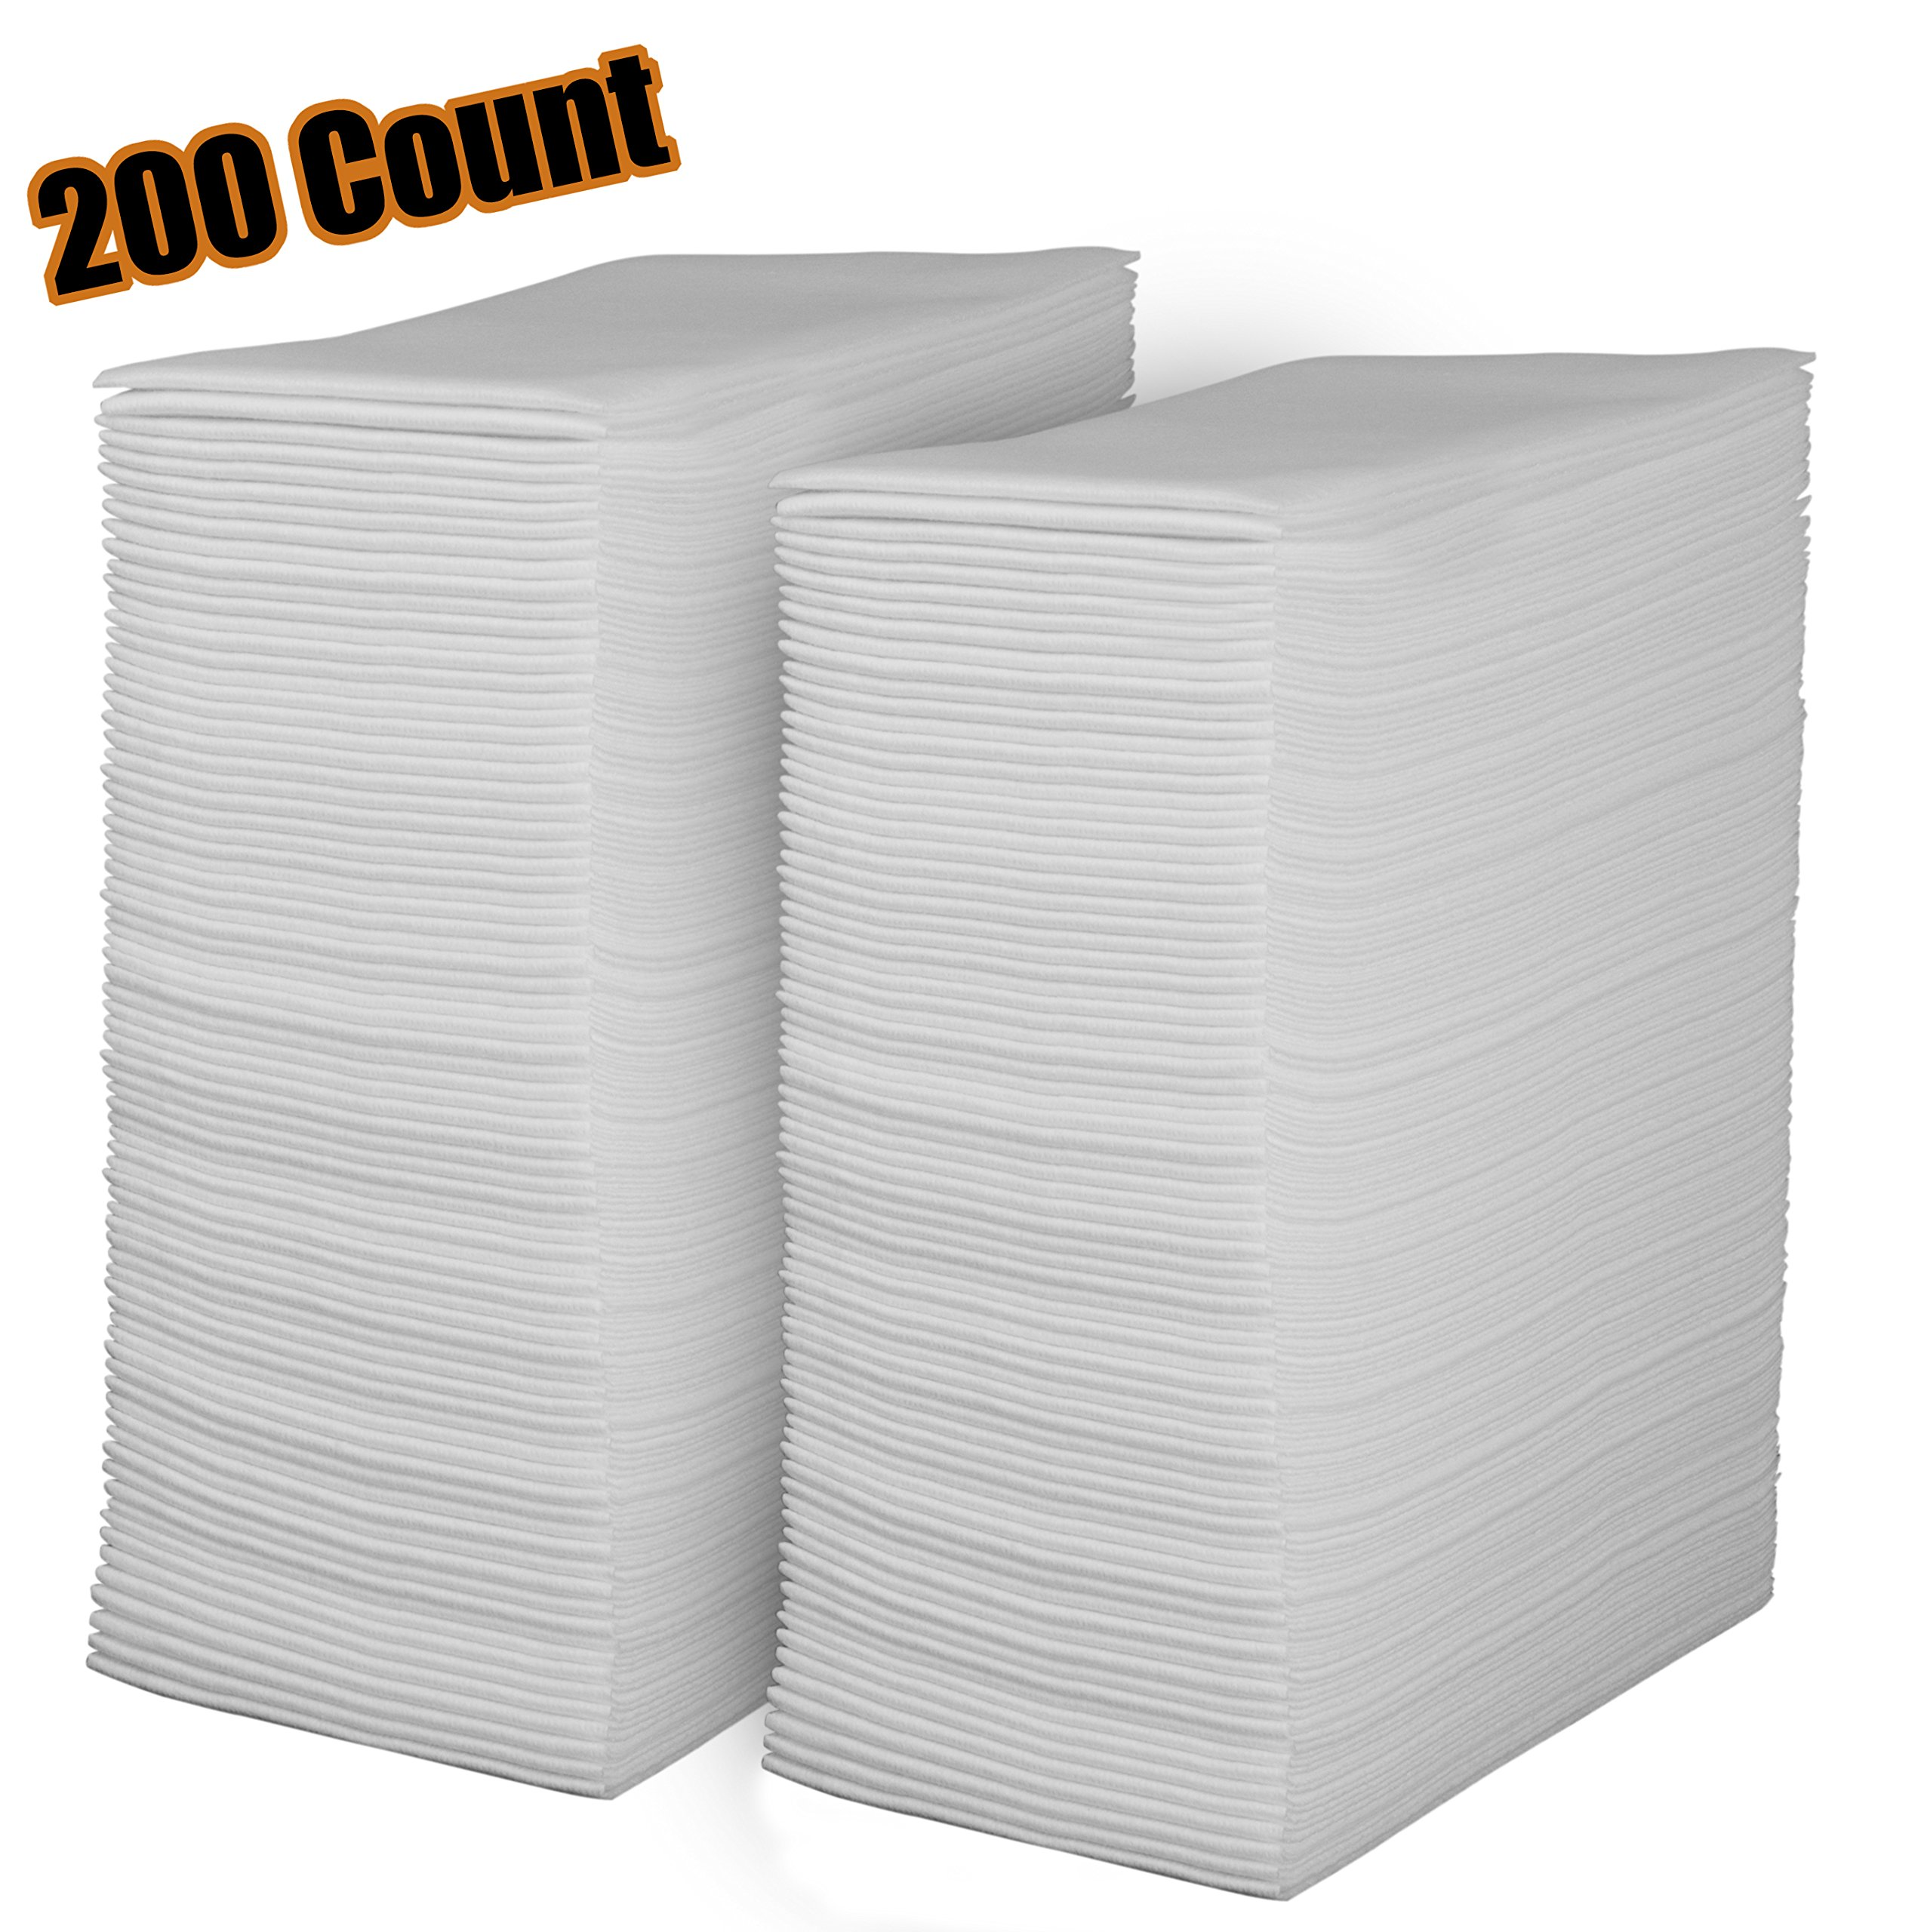 Linen Feel Disposable Guest Towels - Cloth Like White Paper Hand Napkins 200 Pack - Highly Absorbent, Soft Fancy Guest Hand Towels For Bathroom, Parties, Dinner, Cocktails, Kitchen, Weddings & Events